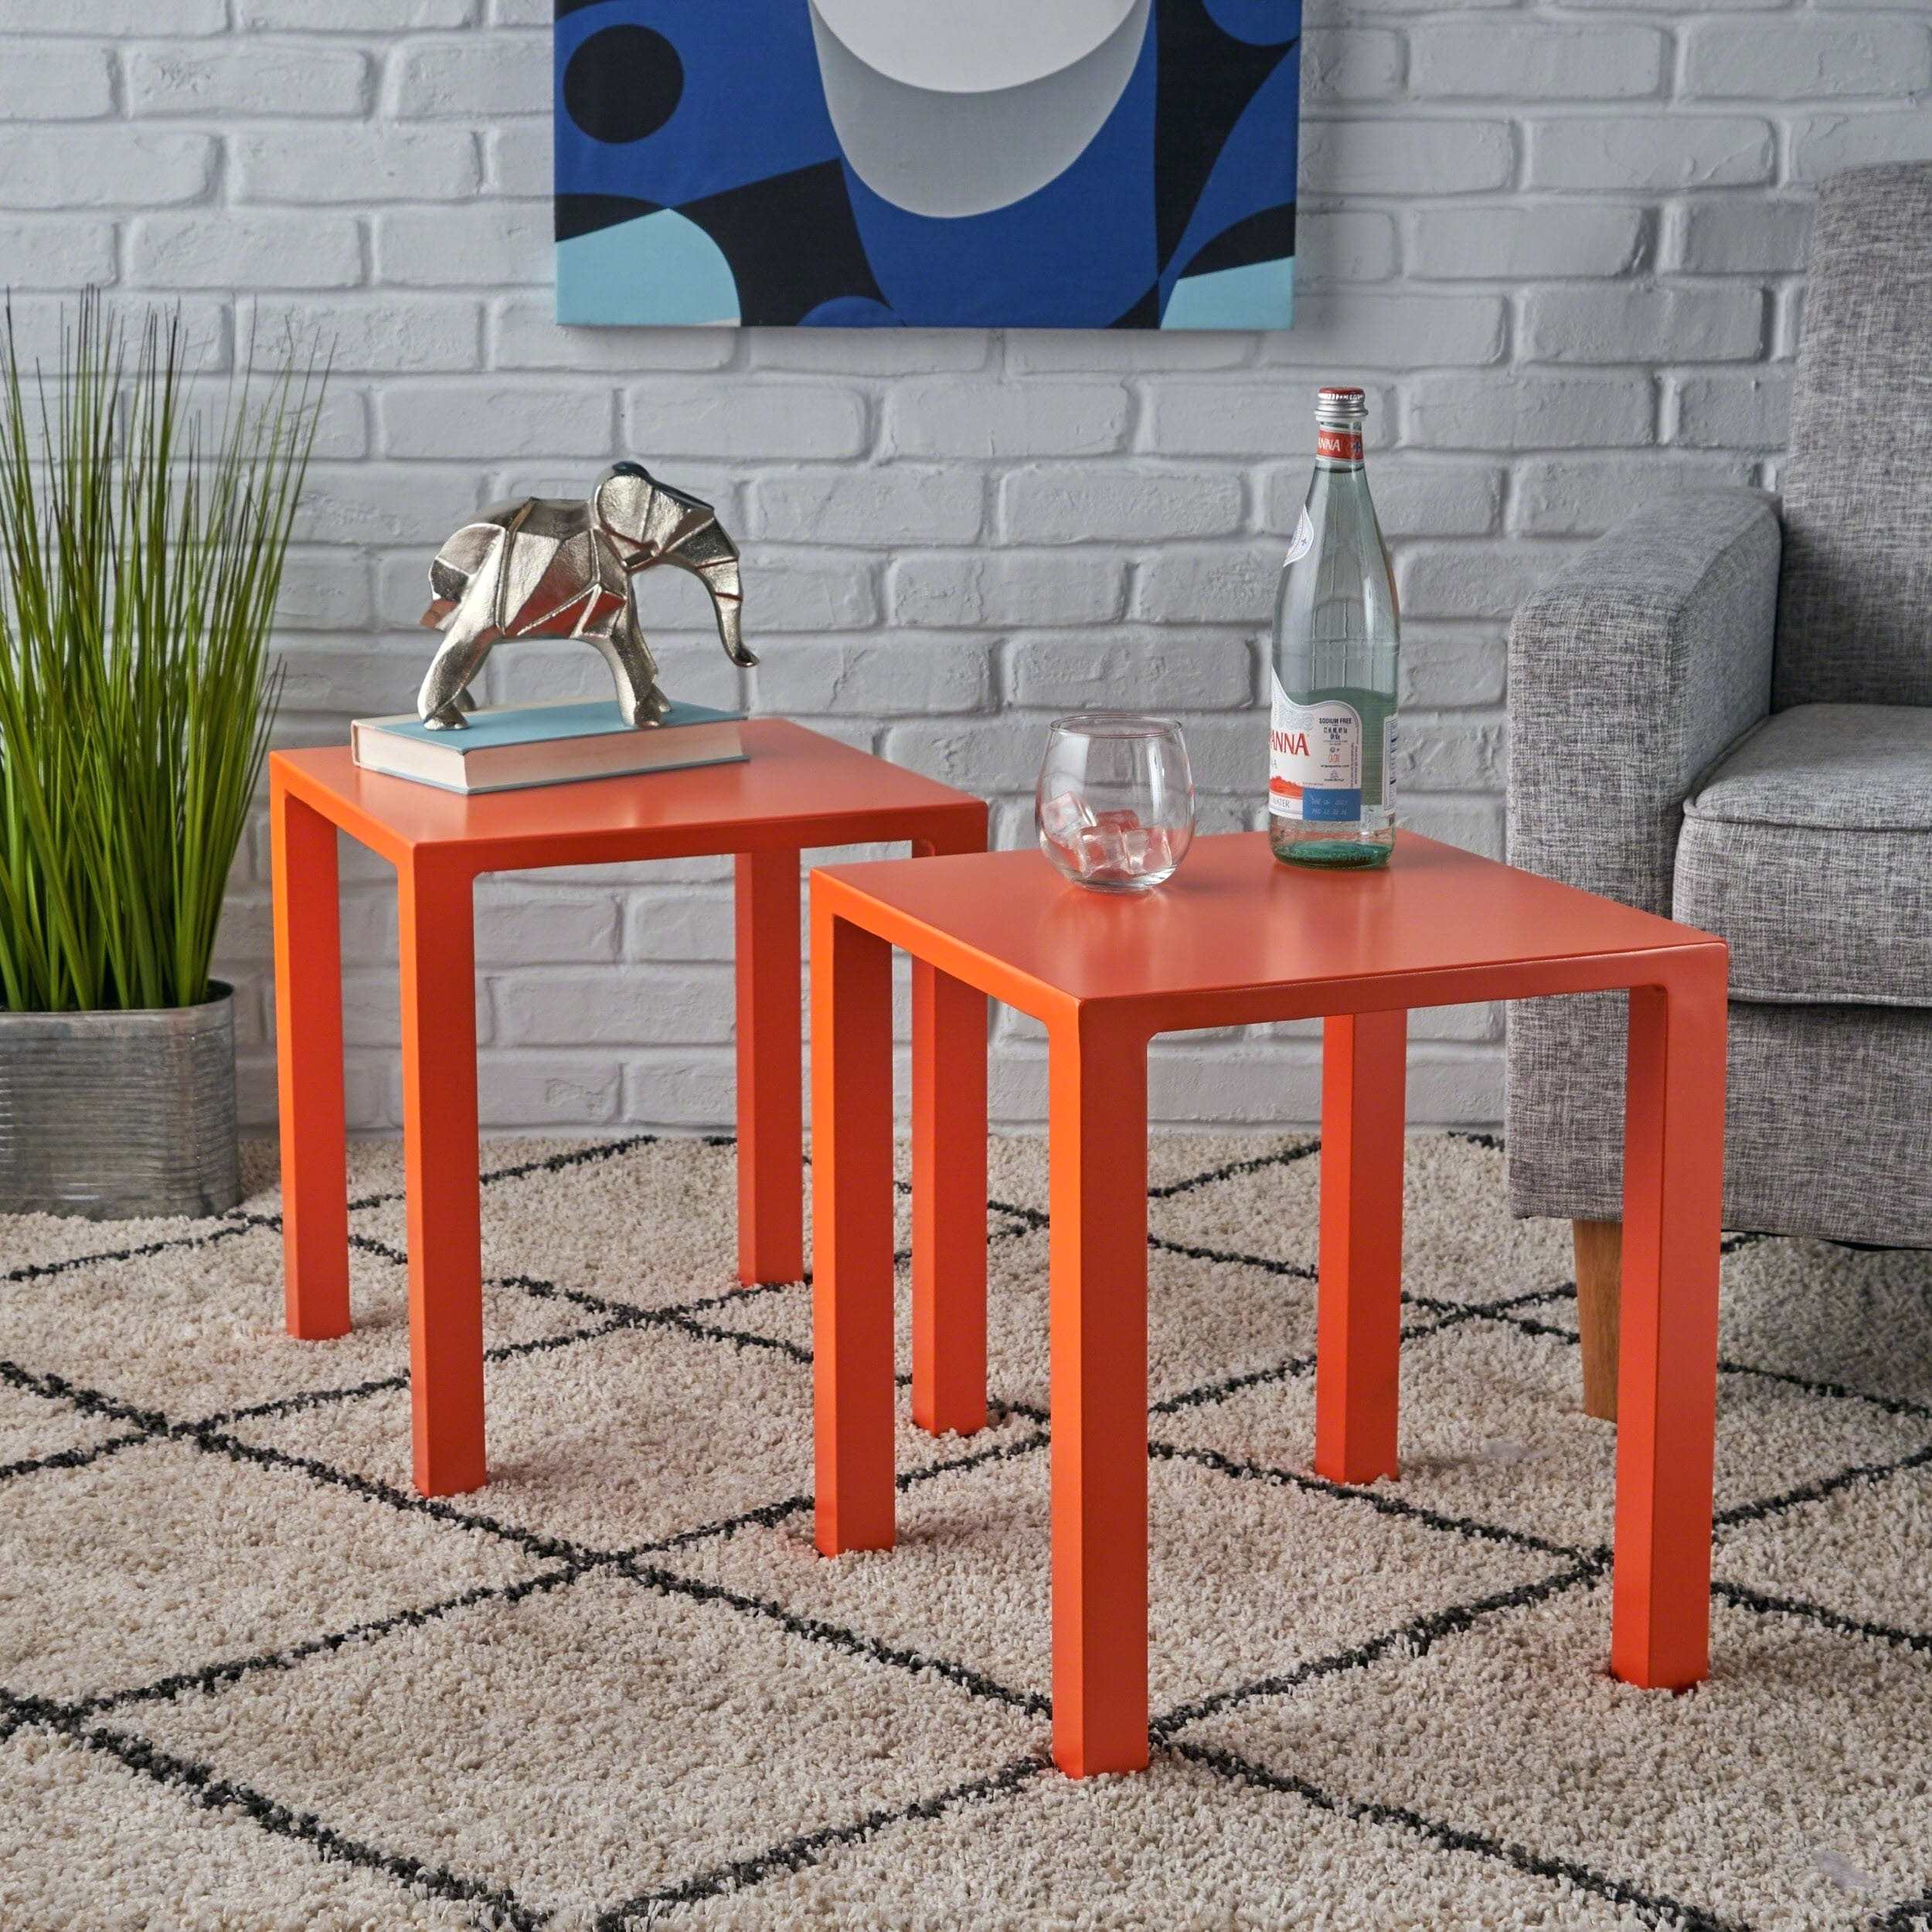 orange side table lack modern inch aluminum set knight outdoor runner quilt kits grey marble dining round glass nest tables black kitchen room essentials shelf bookcase electric